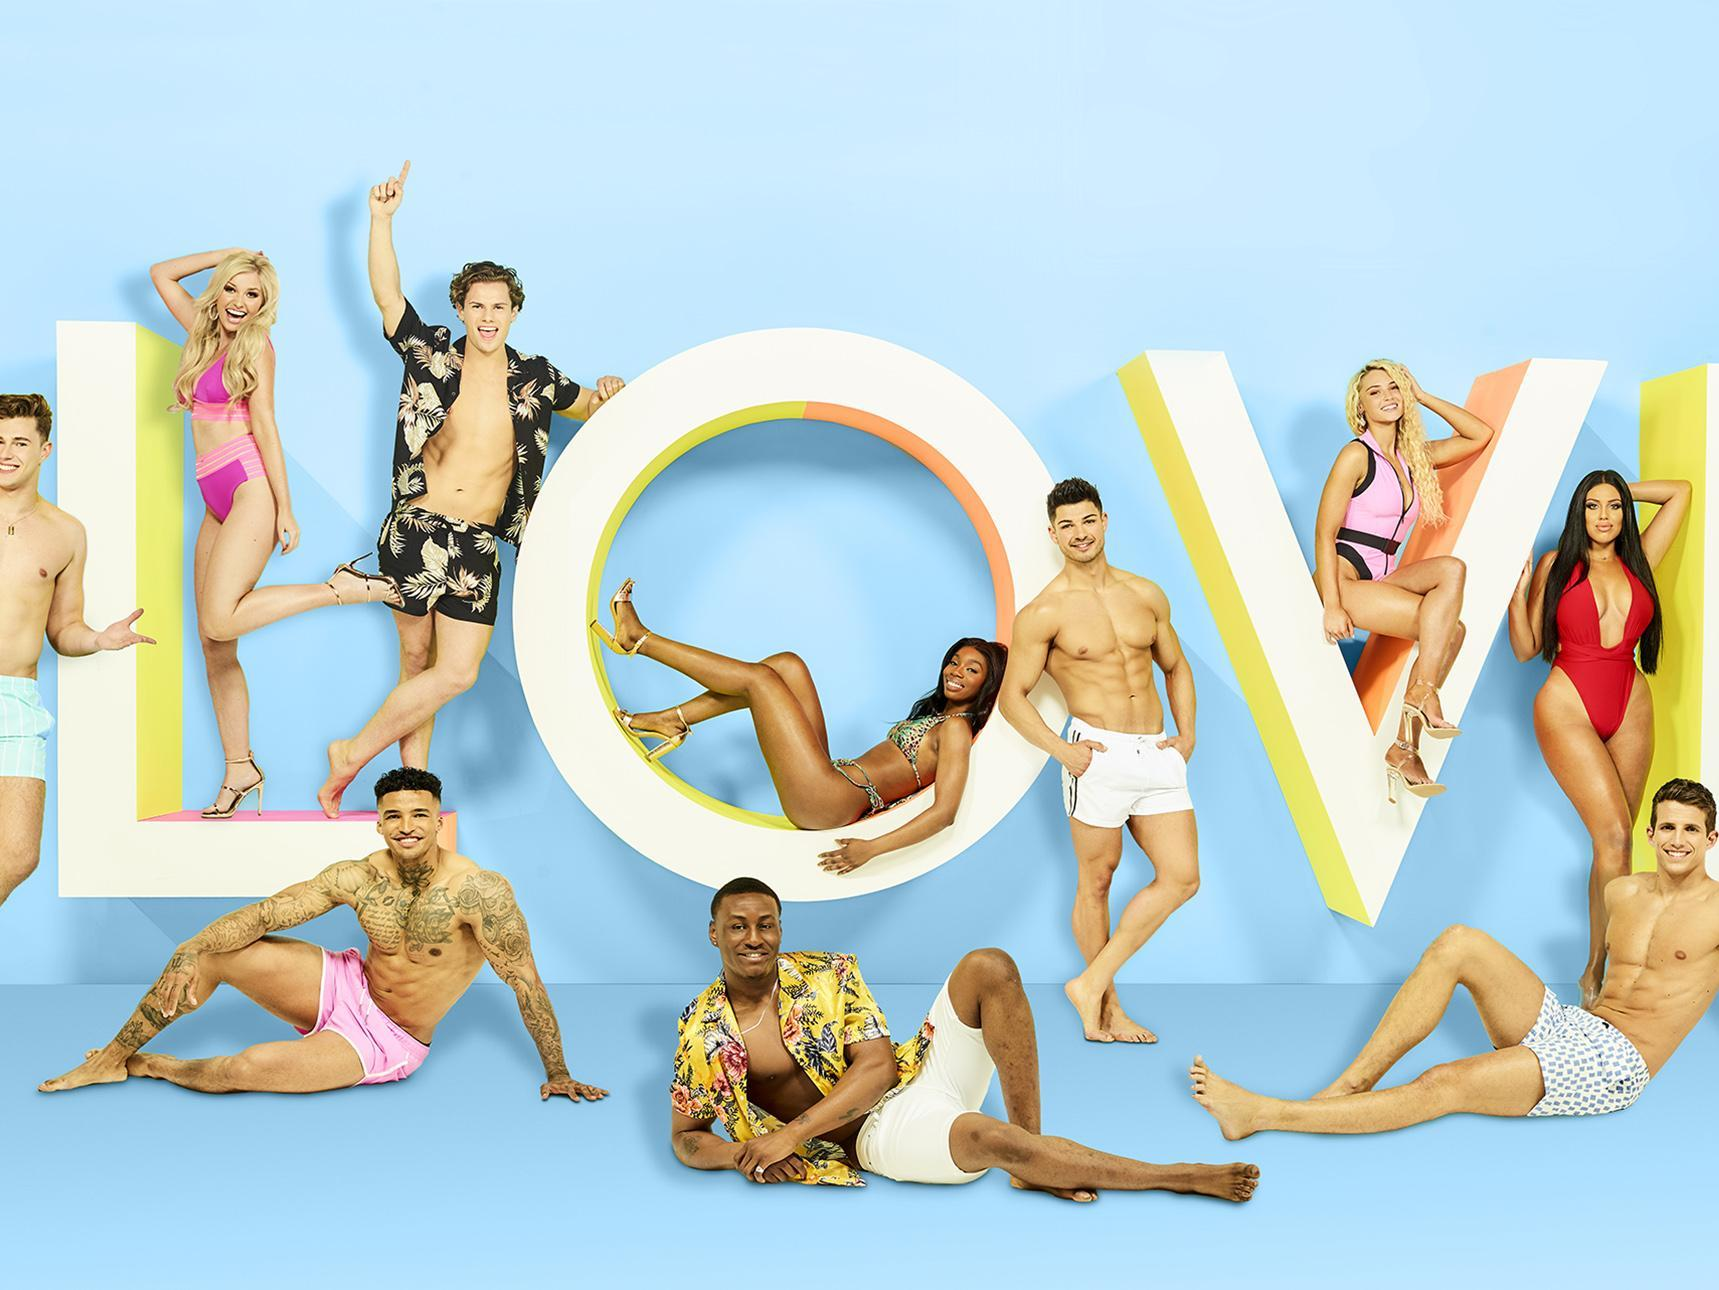 Love Island: Former contestants reveal secrets behind the